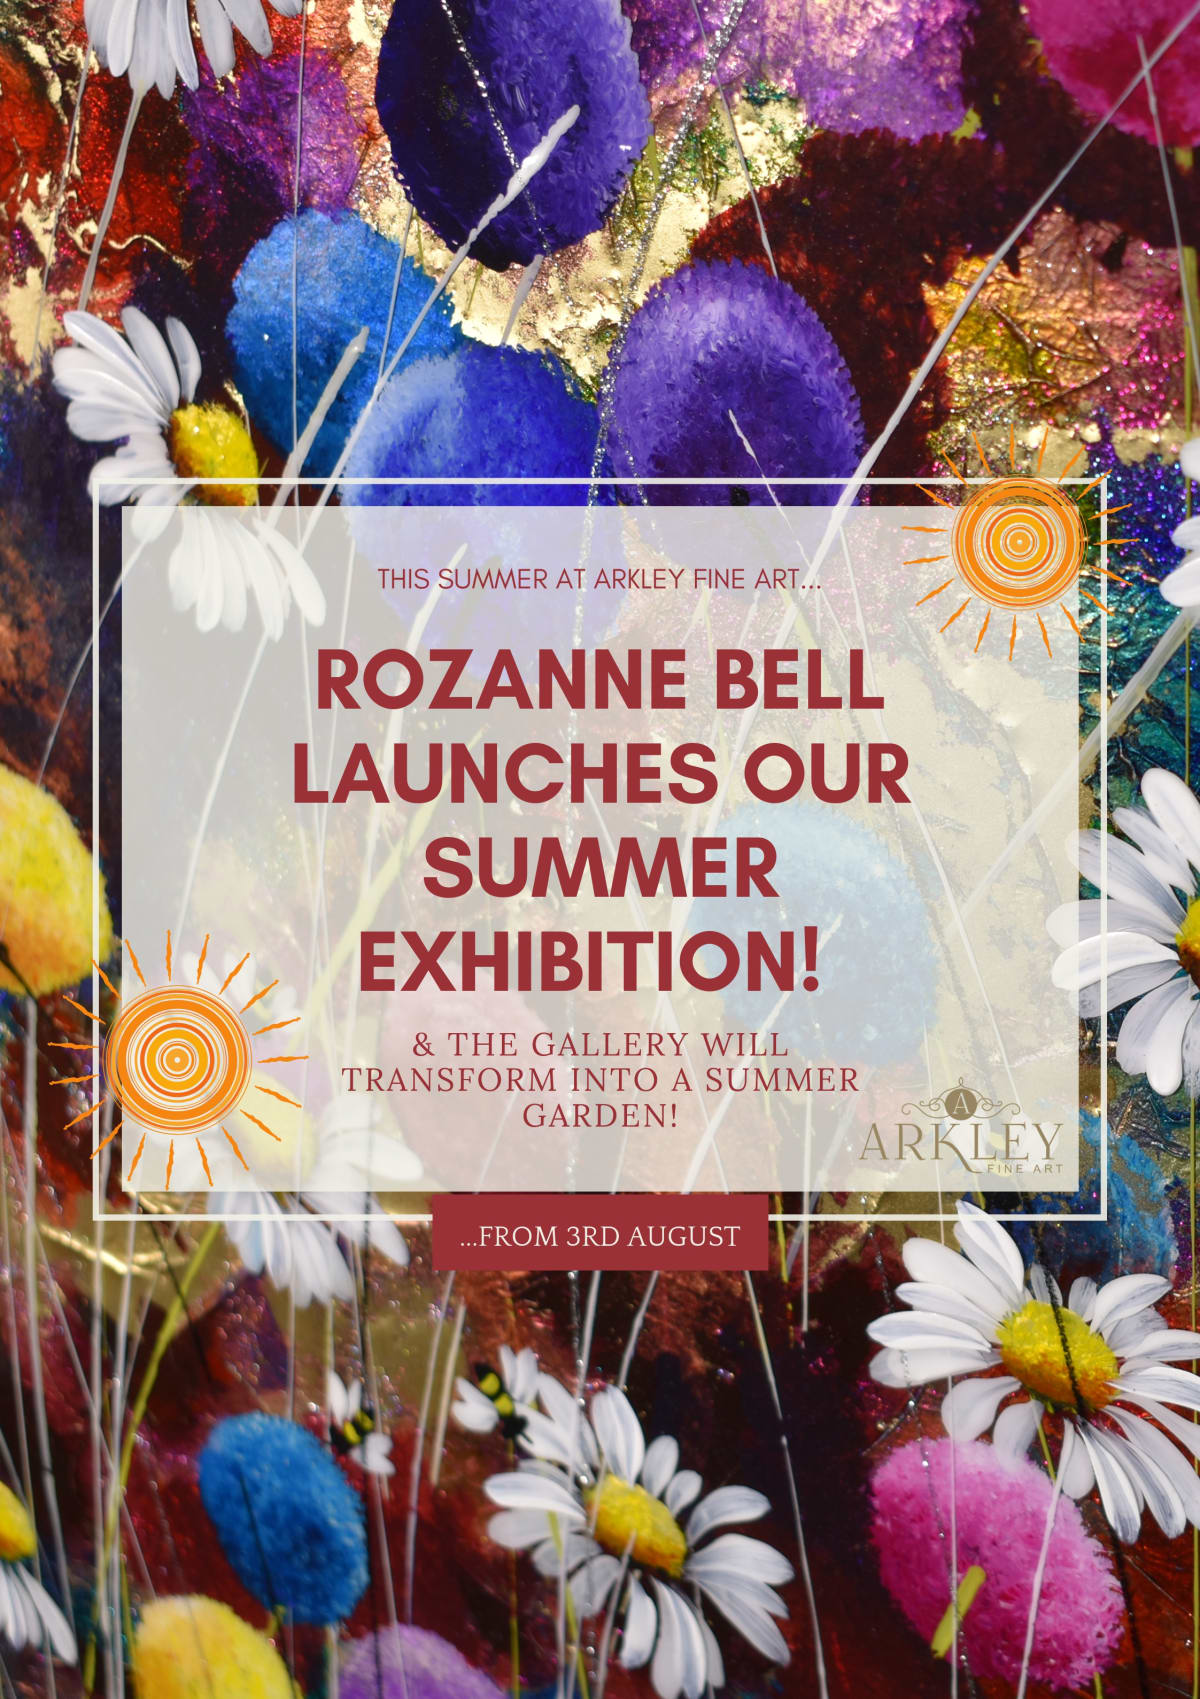 Rozanne Bell launches our Summer Exhibition